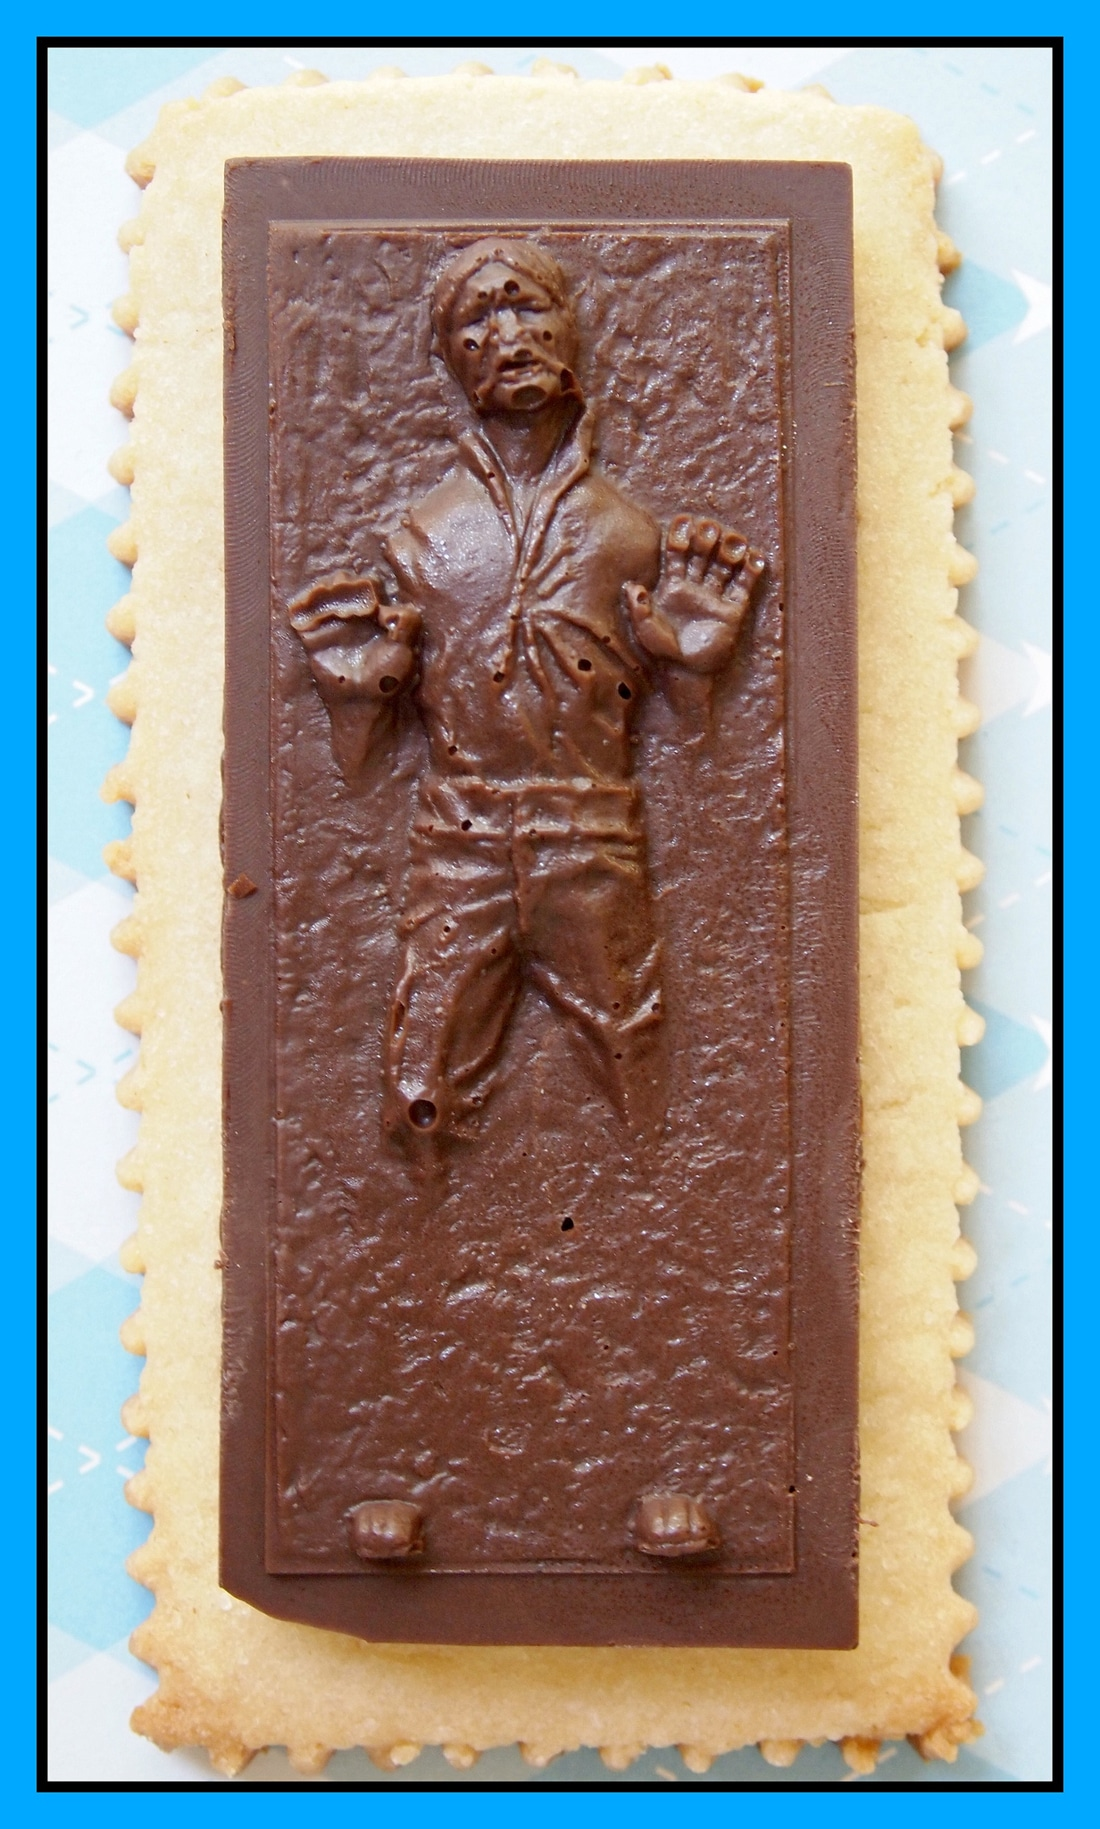 Han Solo In Carbonite Chocolate Sugar Cookies